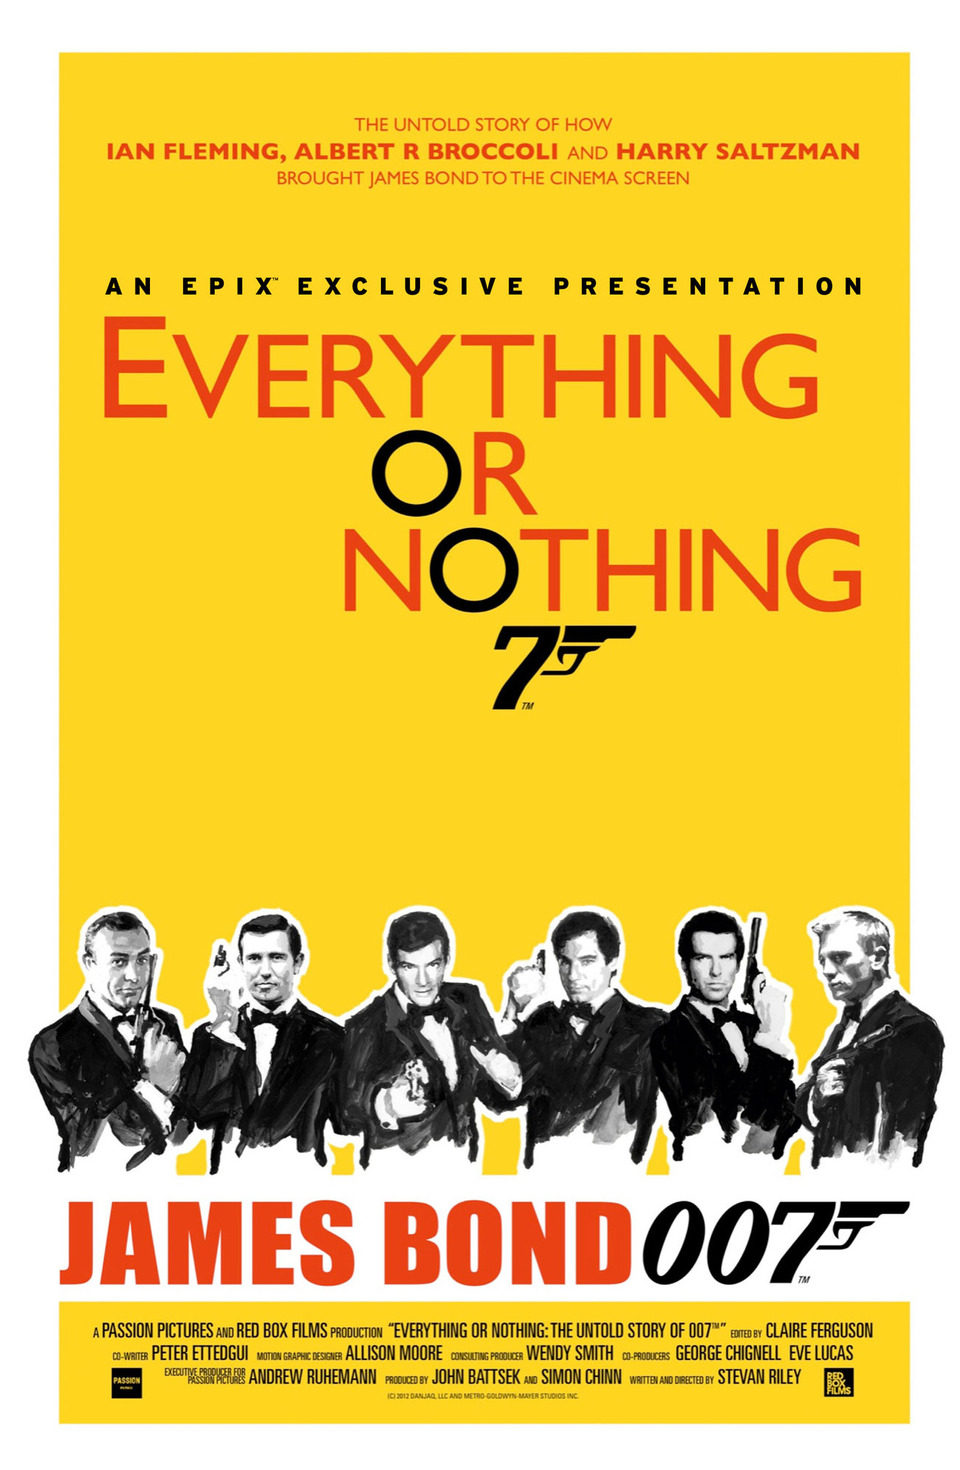 Reino Unido poster for Everything or Nothing: The Untold Story of 007